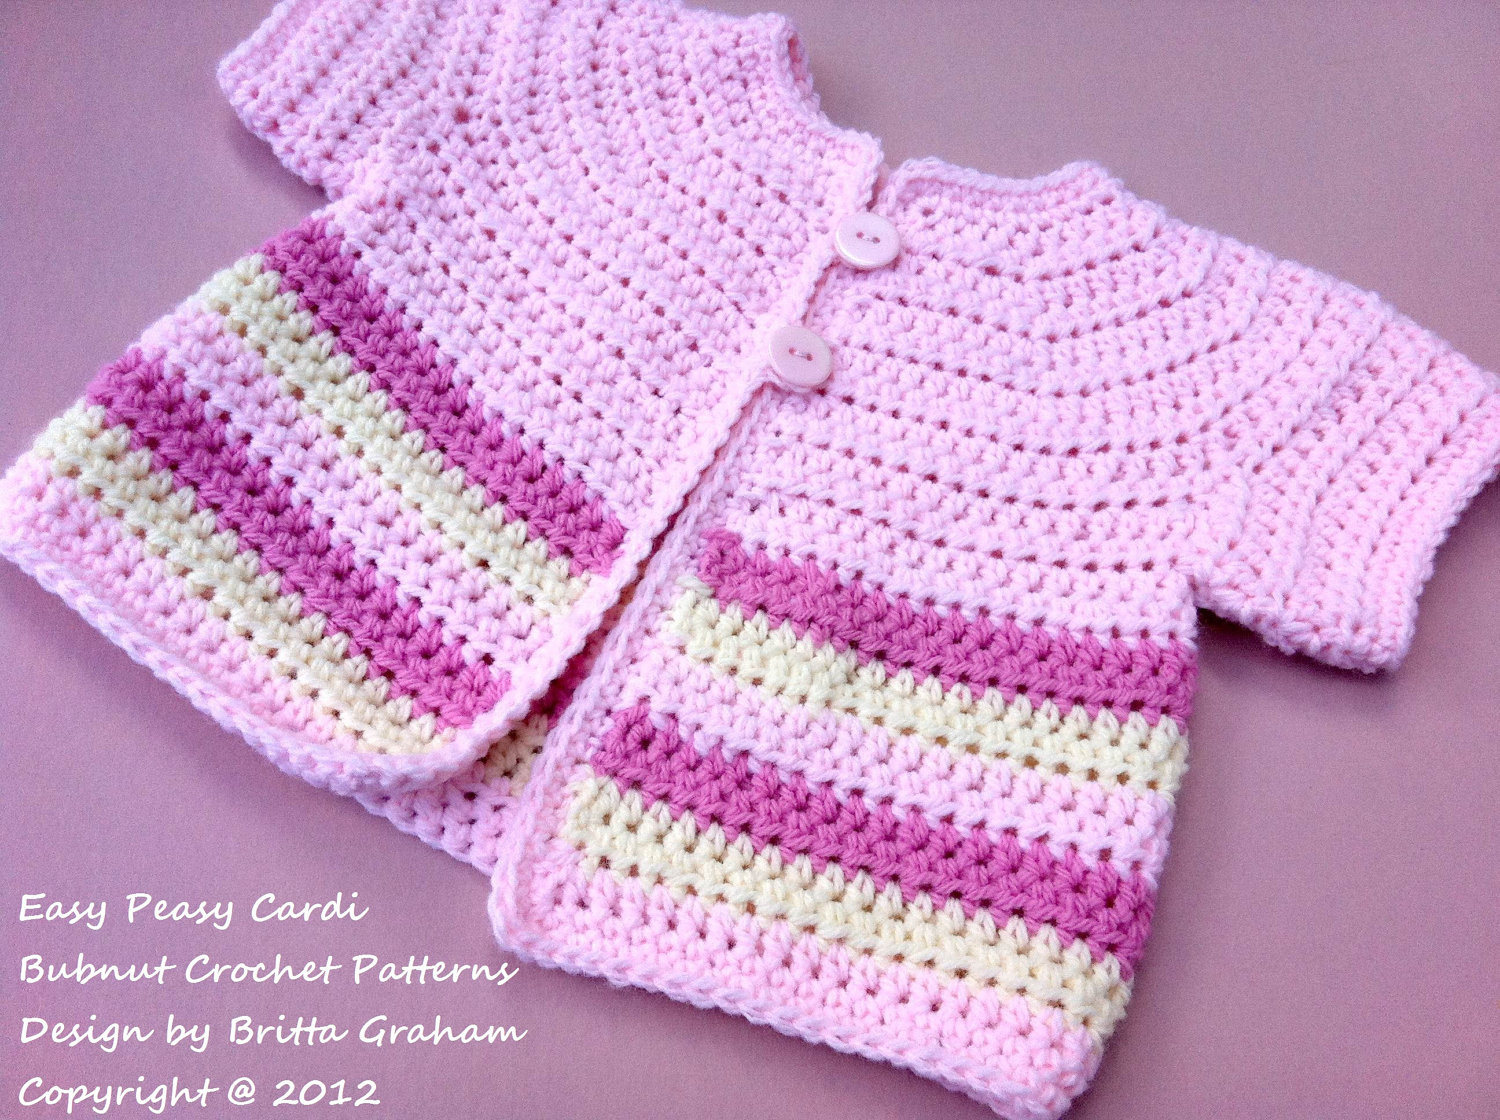 Easy Baby Sweater Crochet Pattern Fresh Easy Crochet Sweater Patterns for Children Of Great 47 Photos Easy Baby Sweater Crochet Pattern